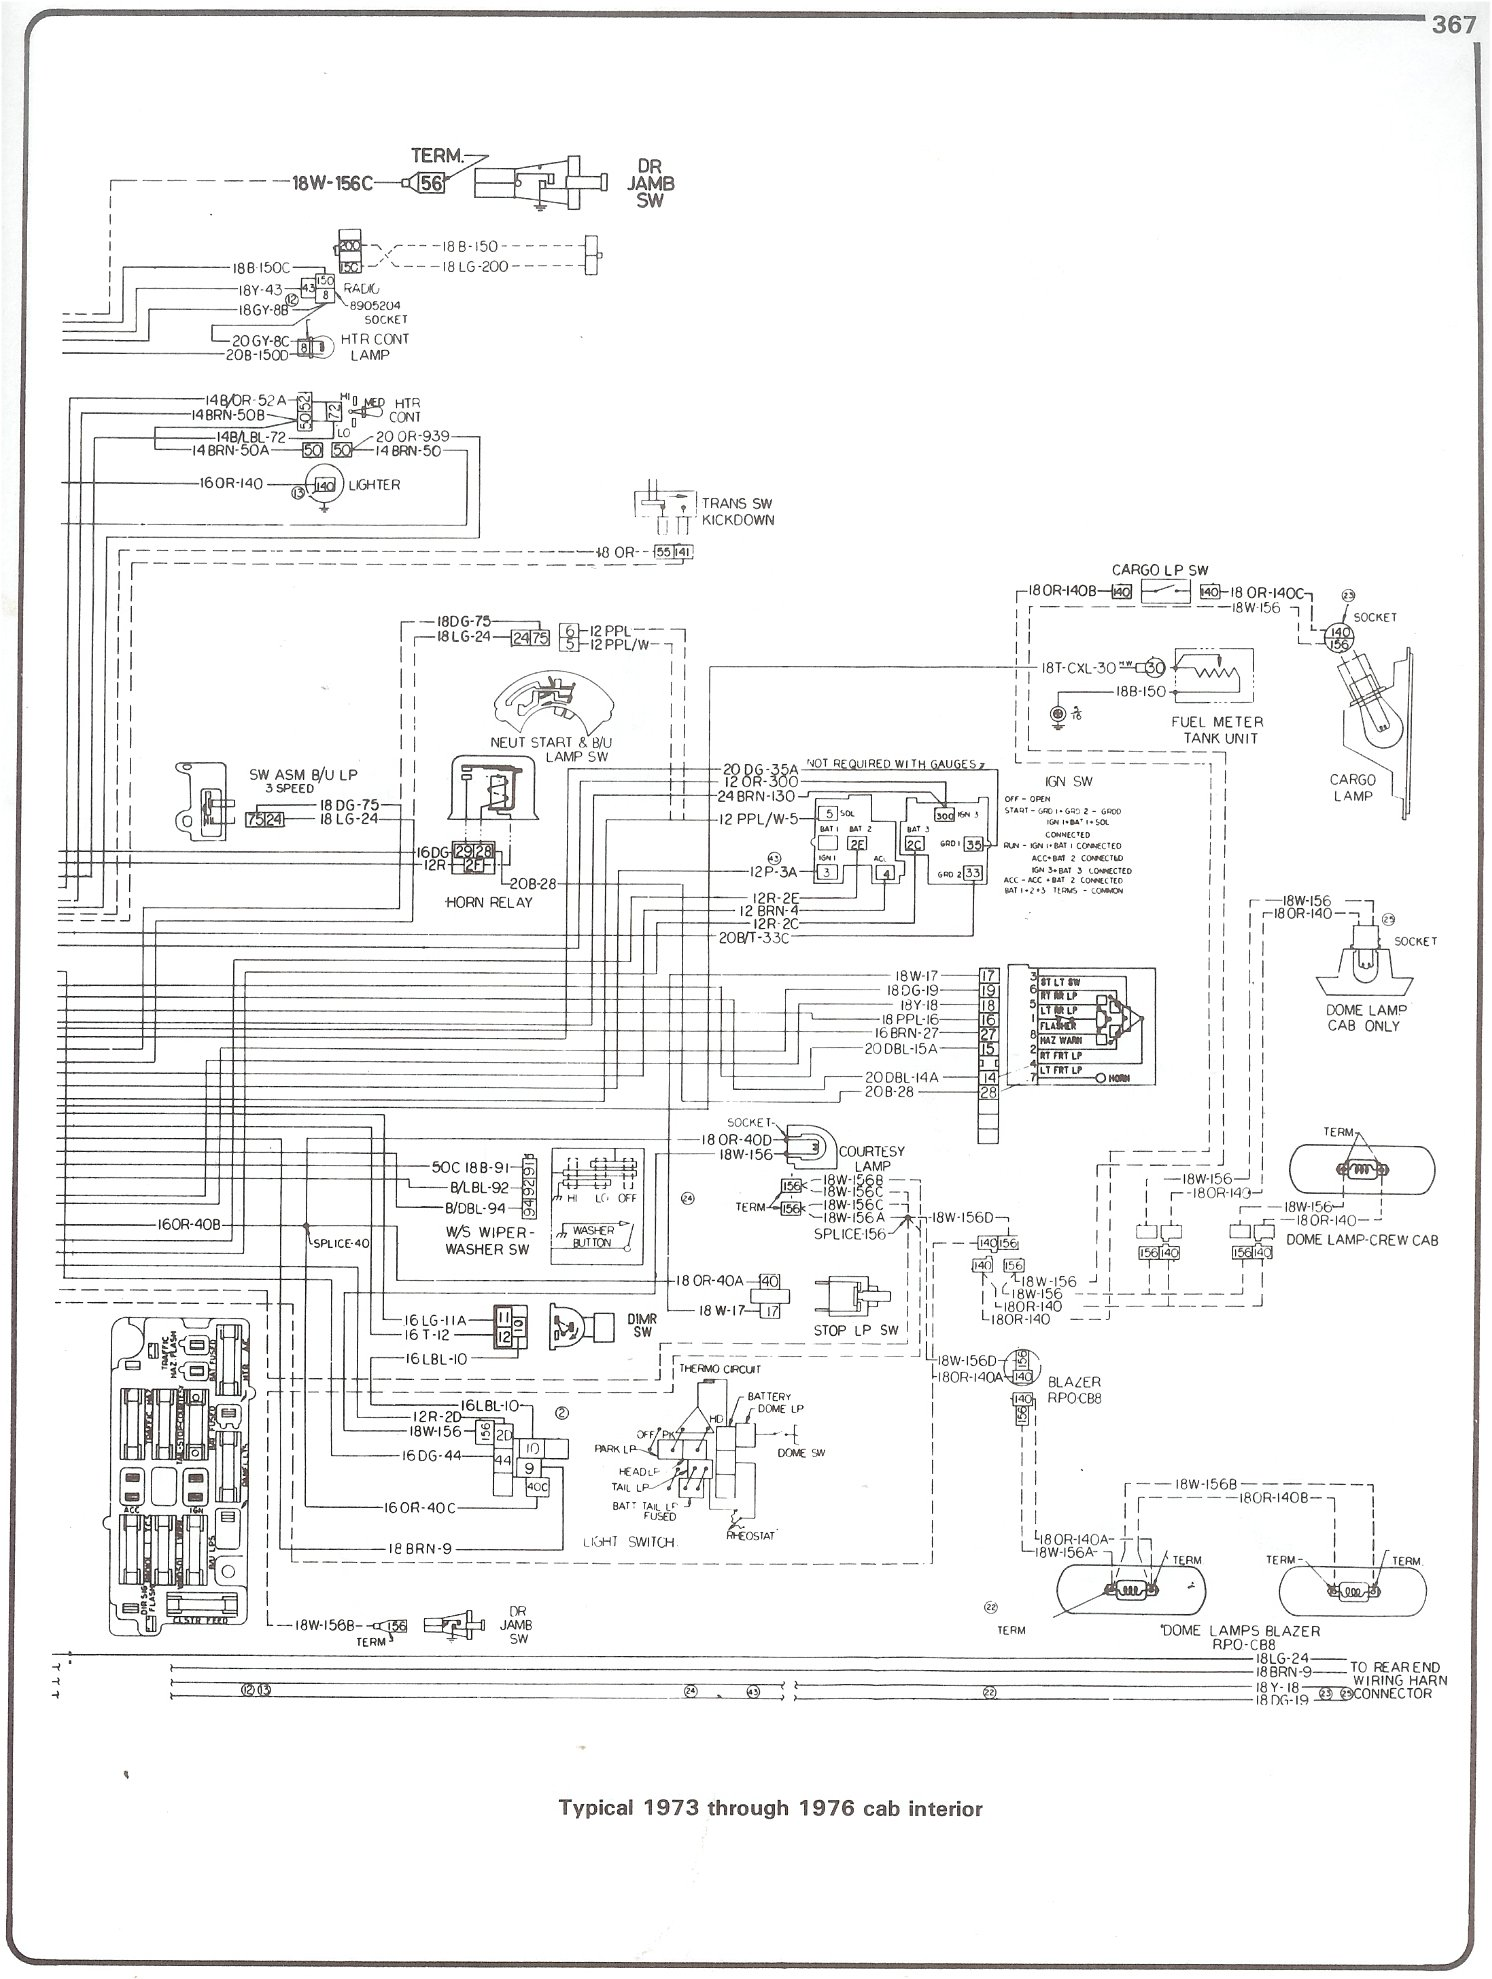 1983 Gmc Wiring Diagram Change Your Idea With Design Mustang Complete 73 87 Diagrams Rh Forum 87chevytrucks Com Truck